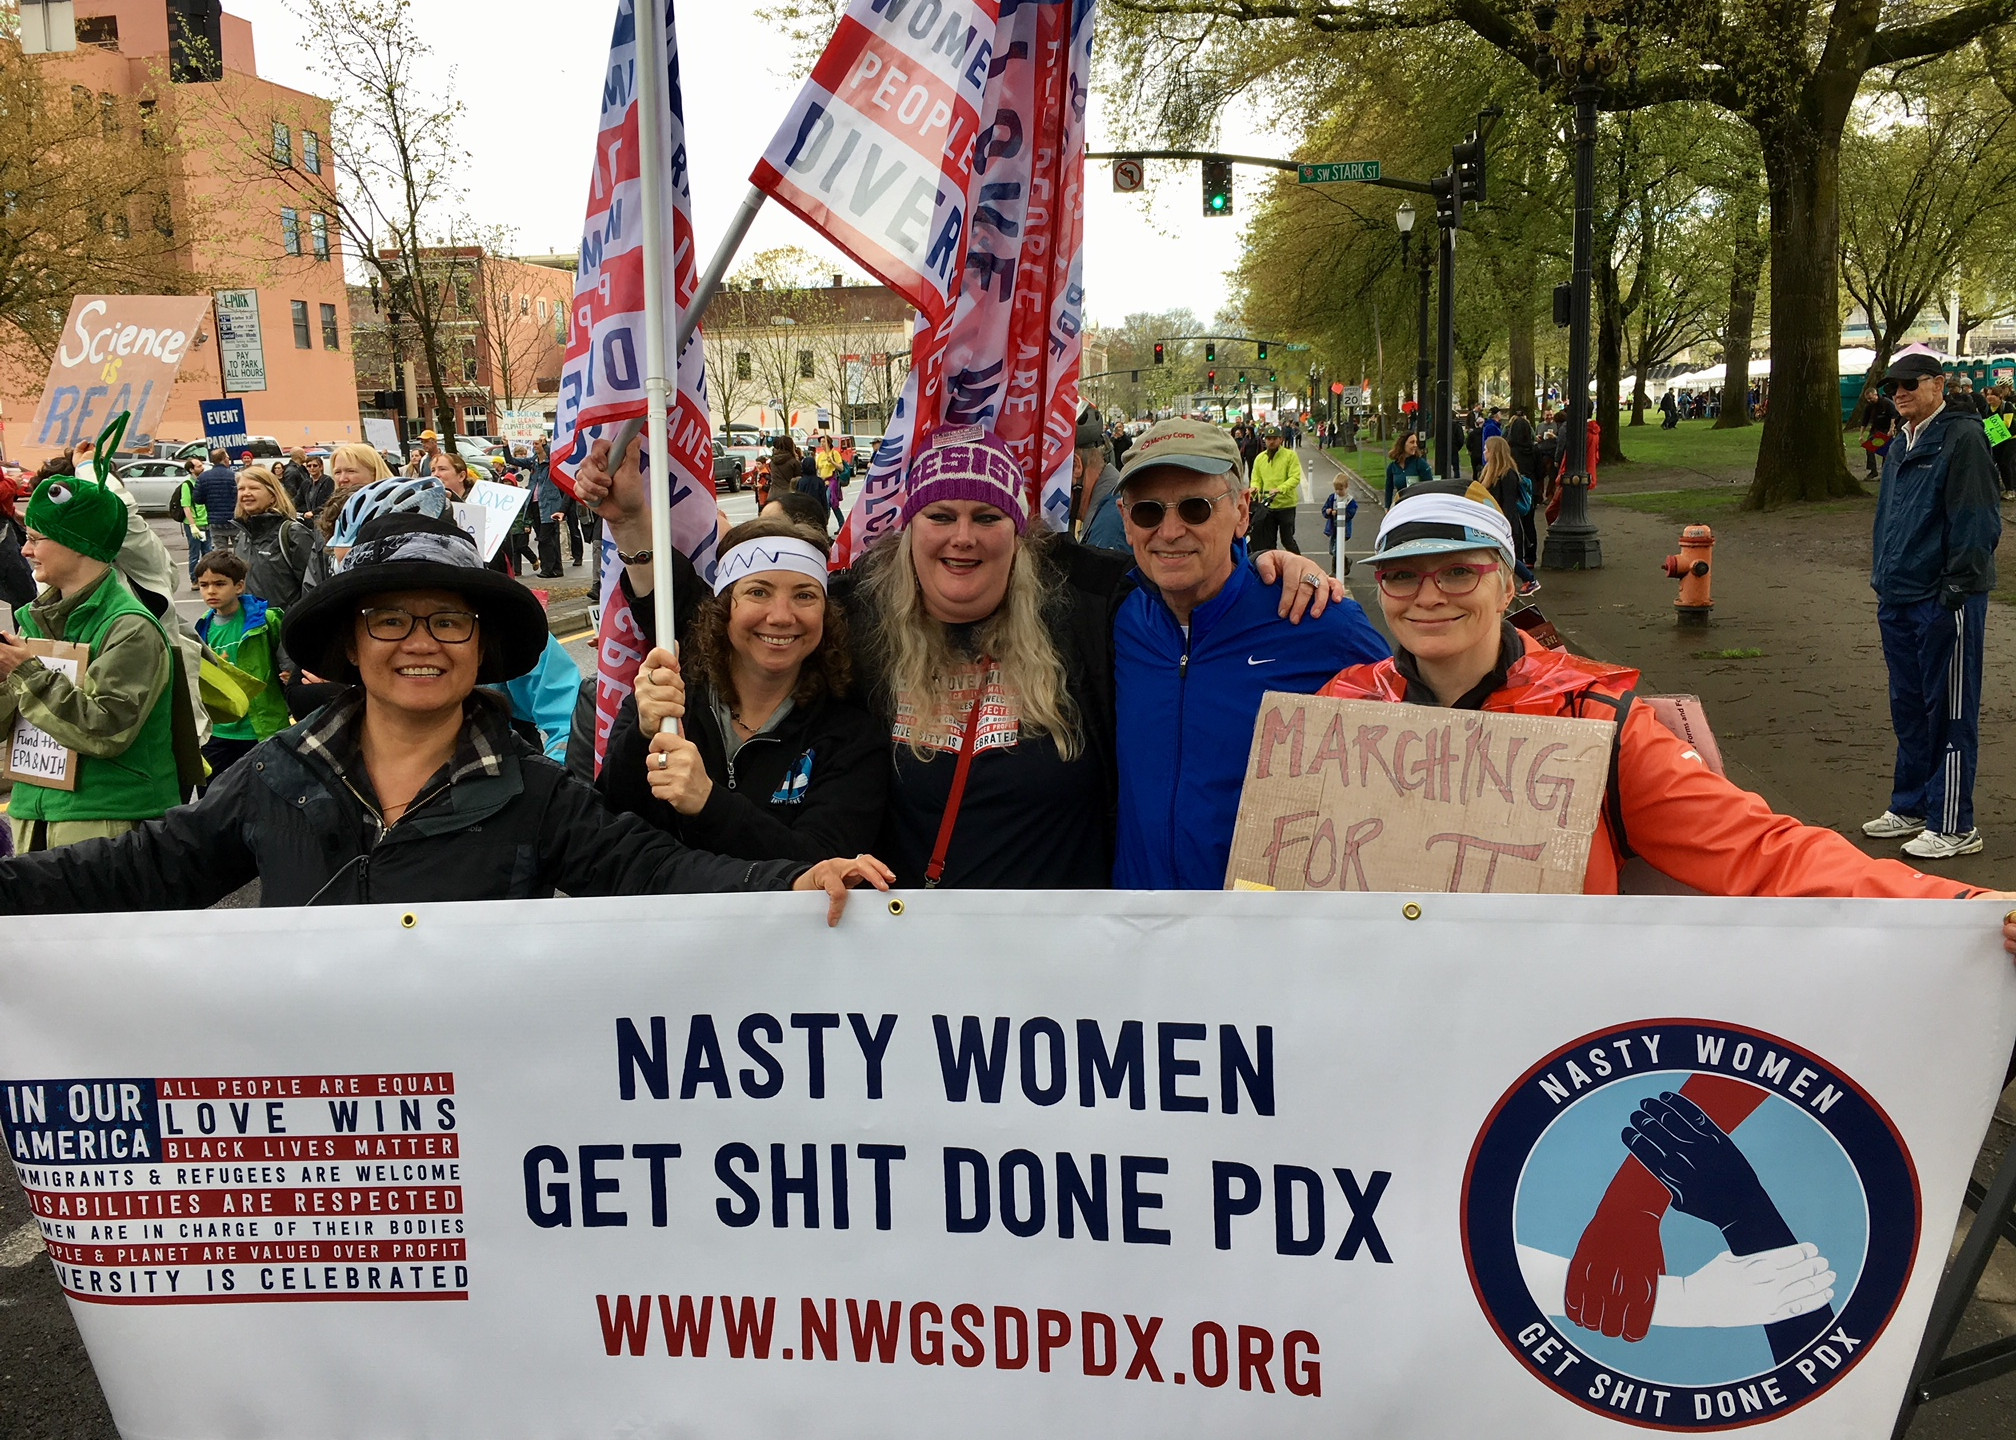 Rep. Earl Blumenauer joined Nasty Women Molly Lee, Ali King, Kirsten Hunter, and Michelle Johnson at the March for Science.